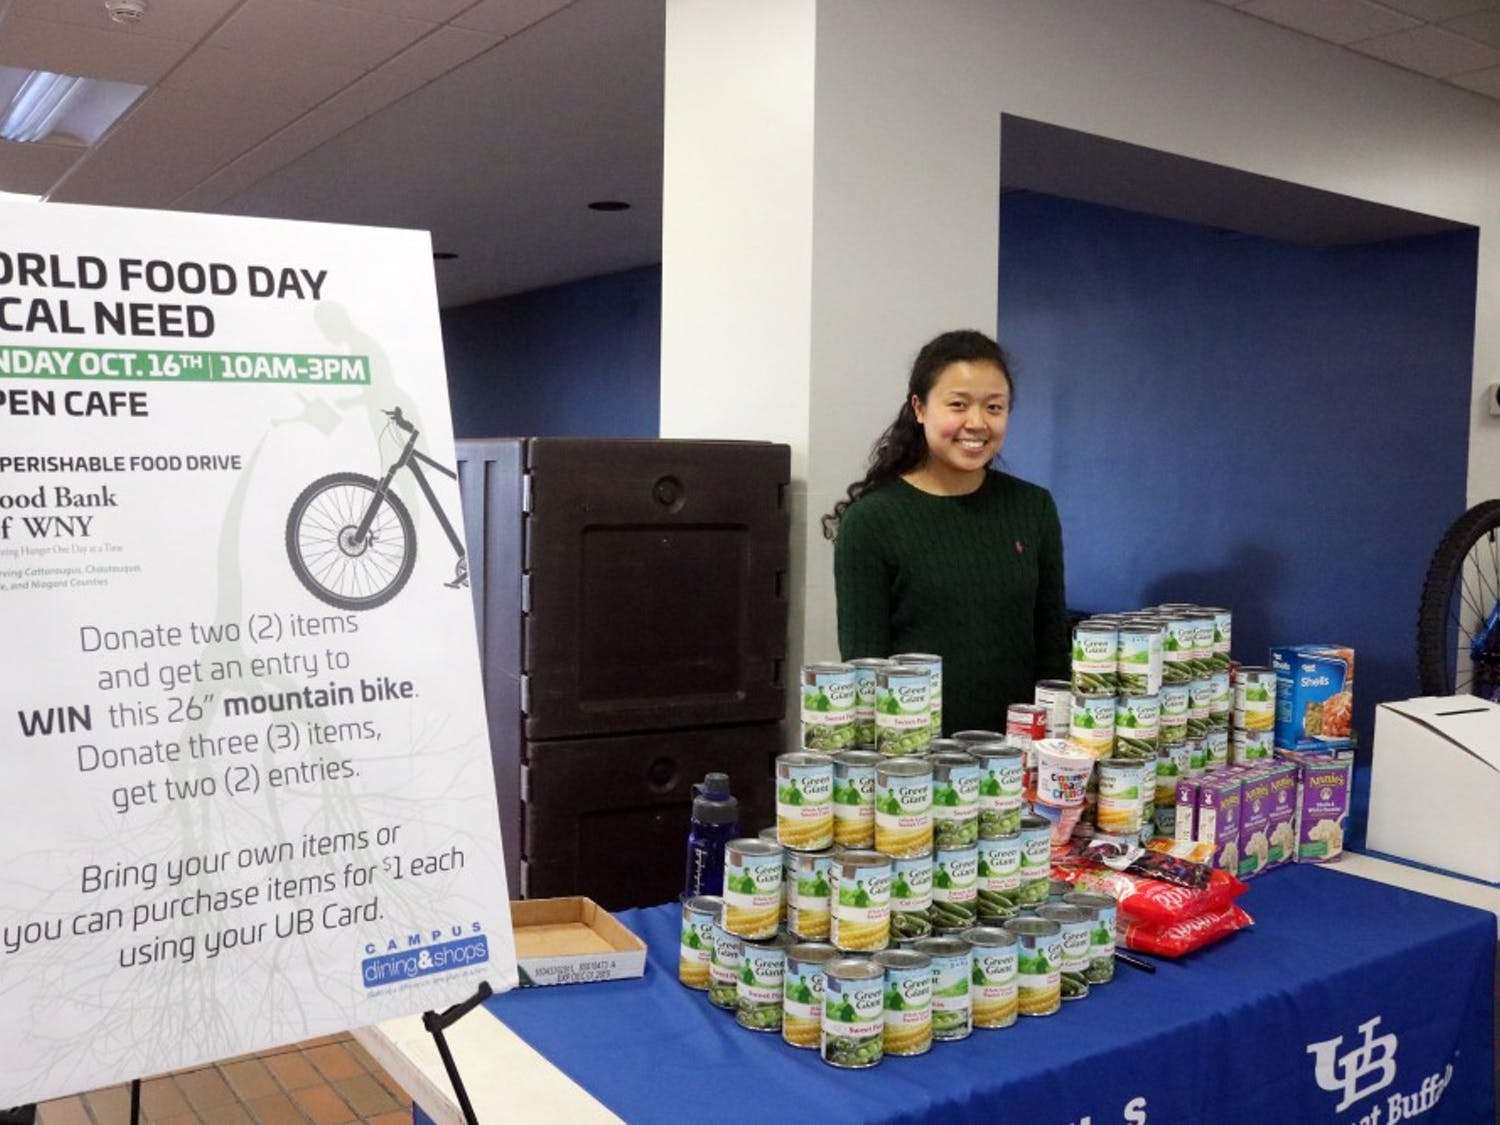 On Monday, members of the UB community gathered next to Capen Cafe to raise awareness for national hunger and sustainability. There was a food drive that will benefit the University Presbyterian Church, which supports UB students and local communities around South Campus.